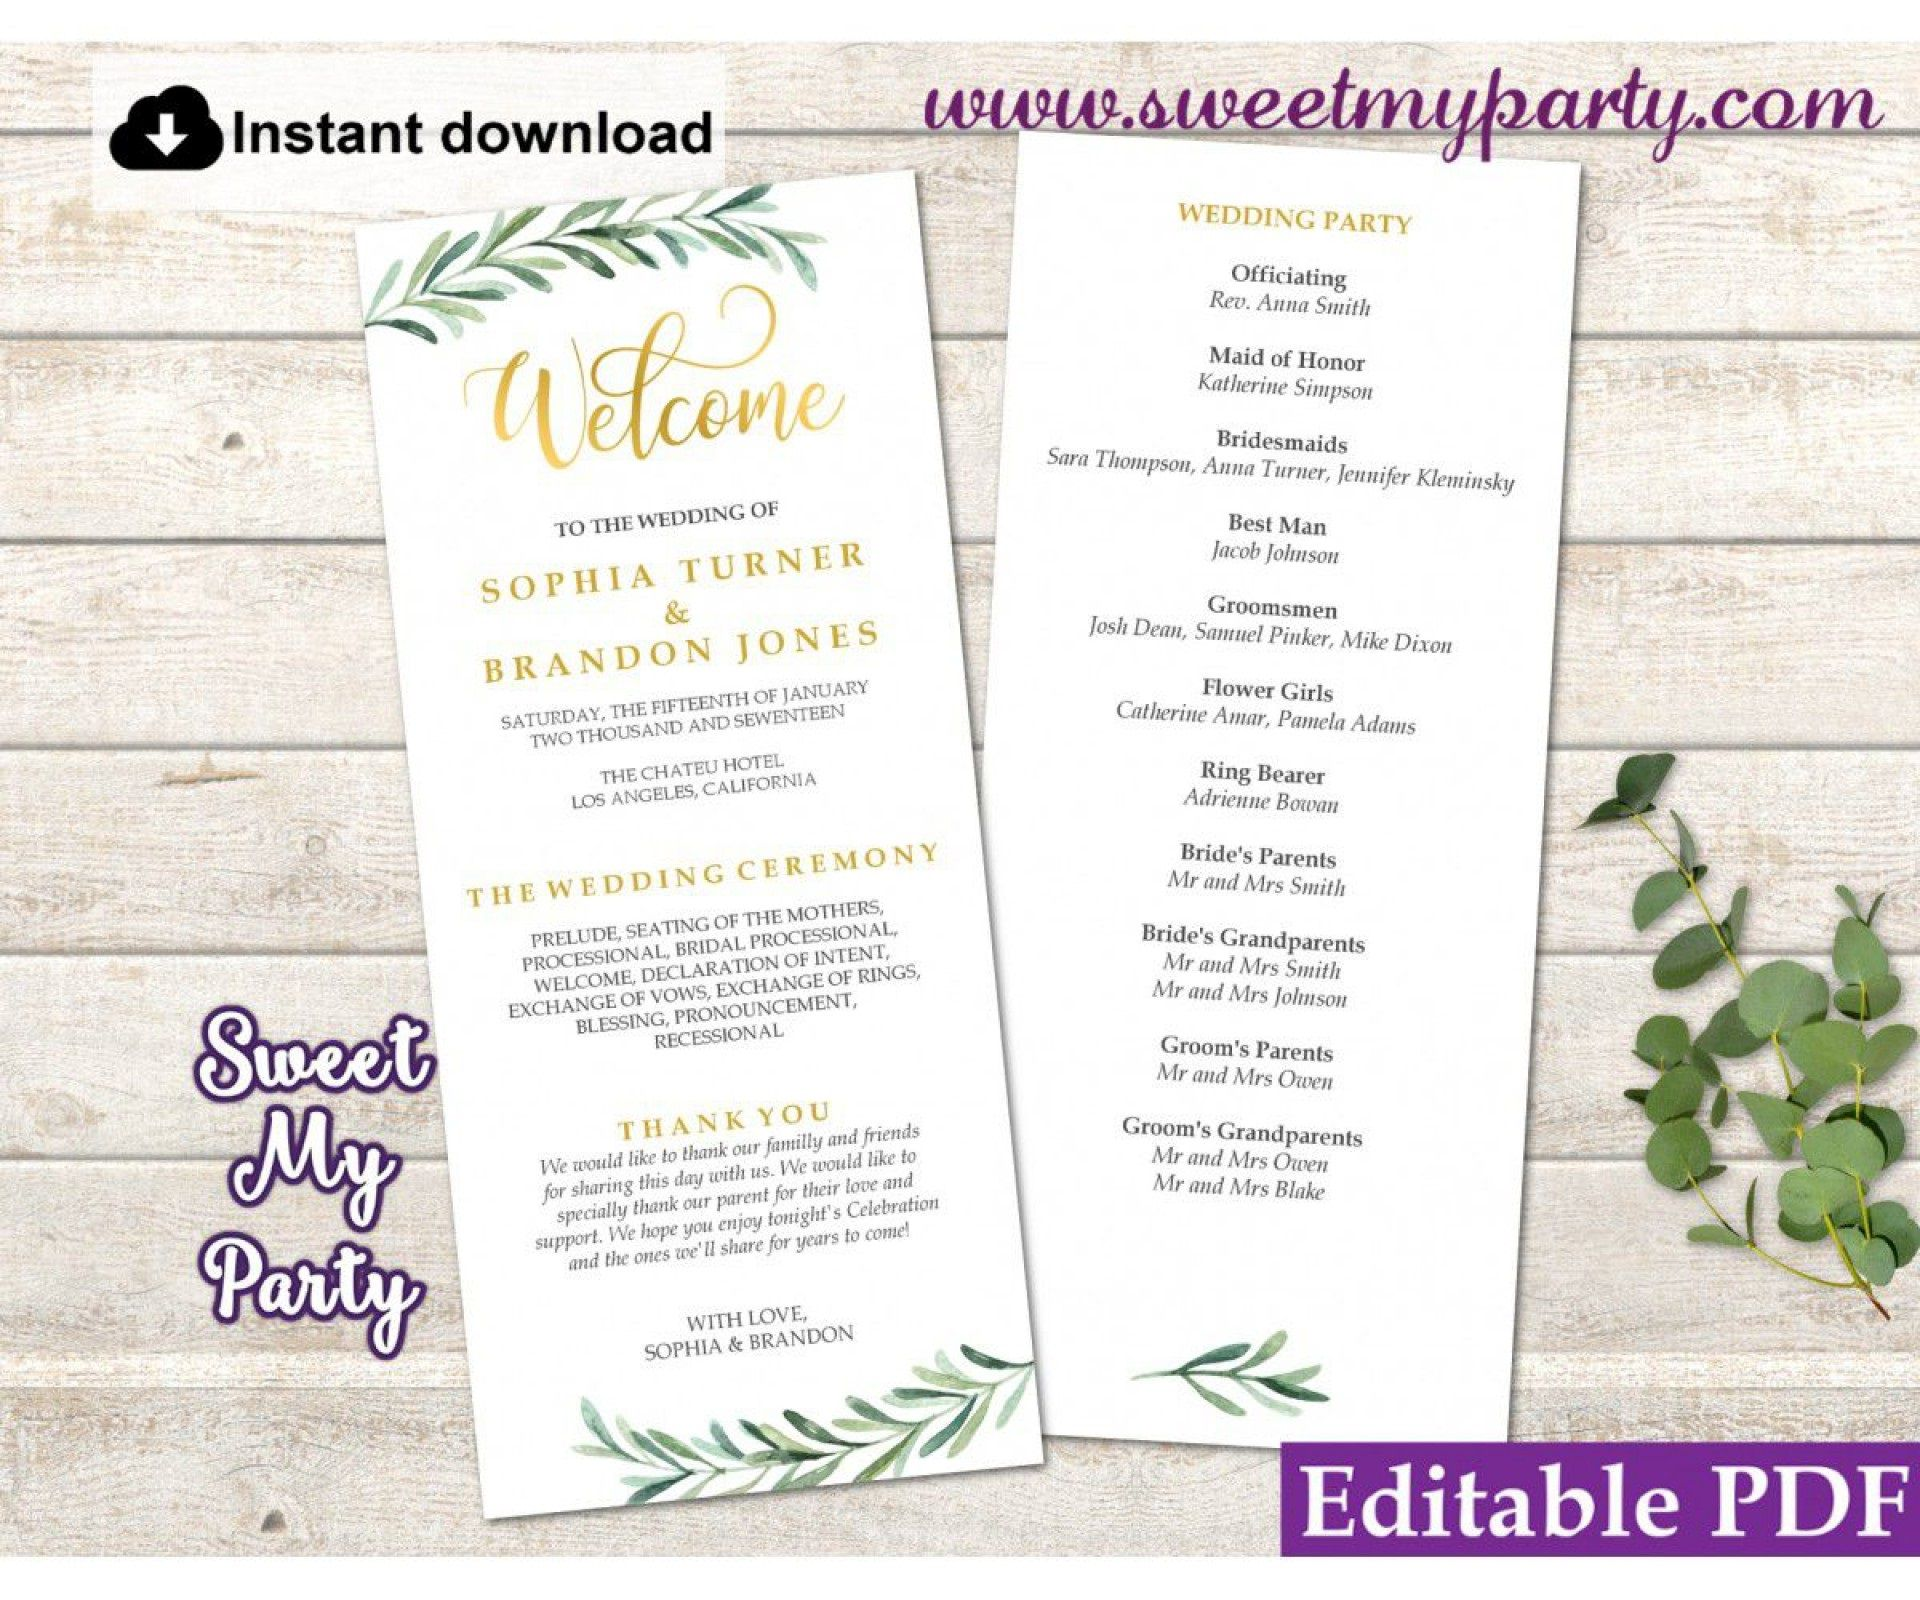 006 Exceptional Wedding Order Of Service Template Word Design  Free MicrosoftFull